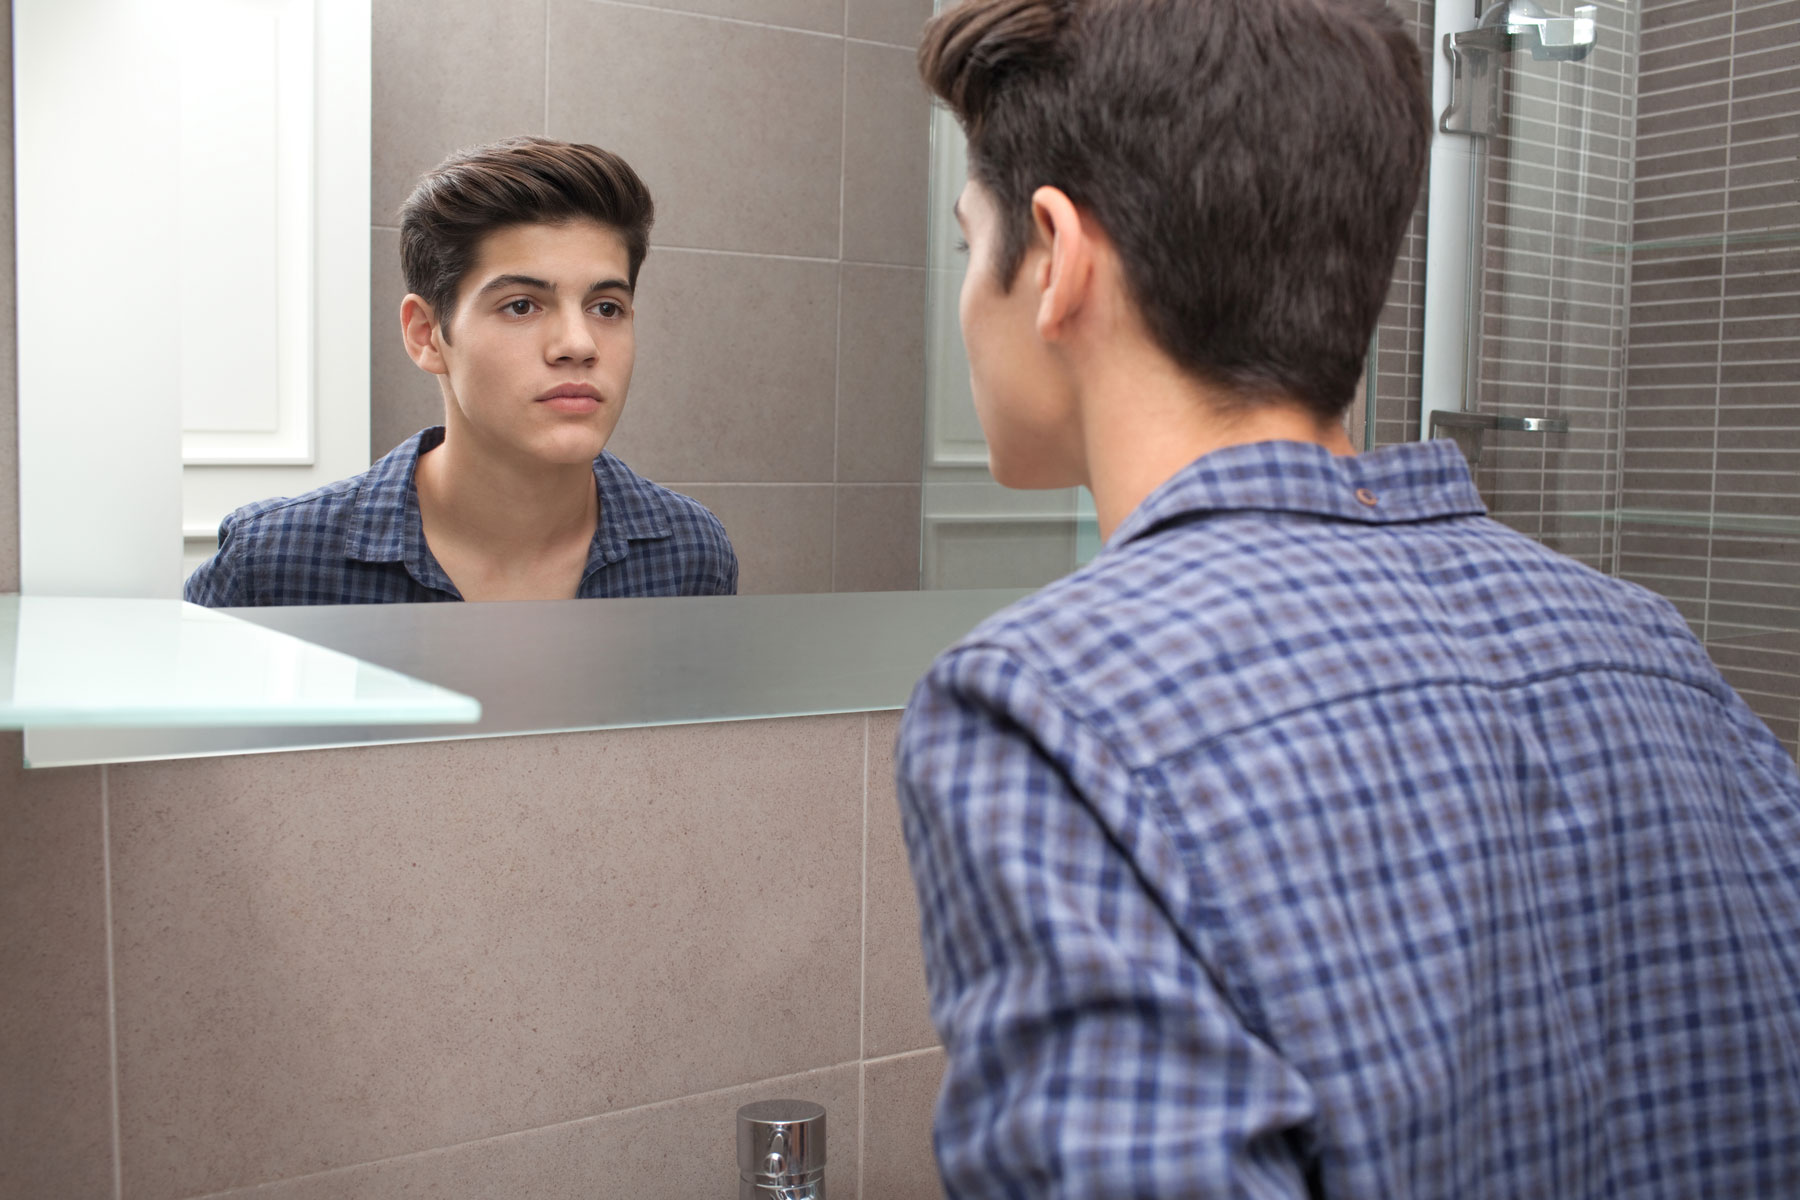 5 things you didn't know about eating disorders, and how to seek